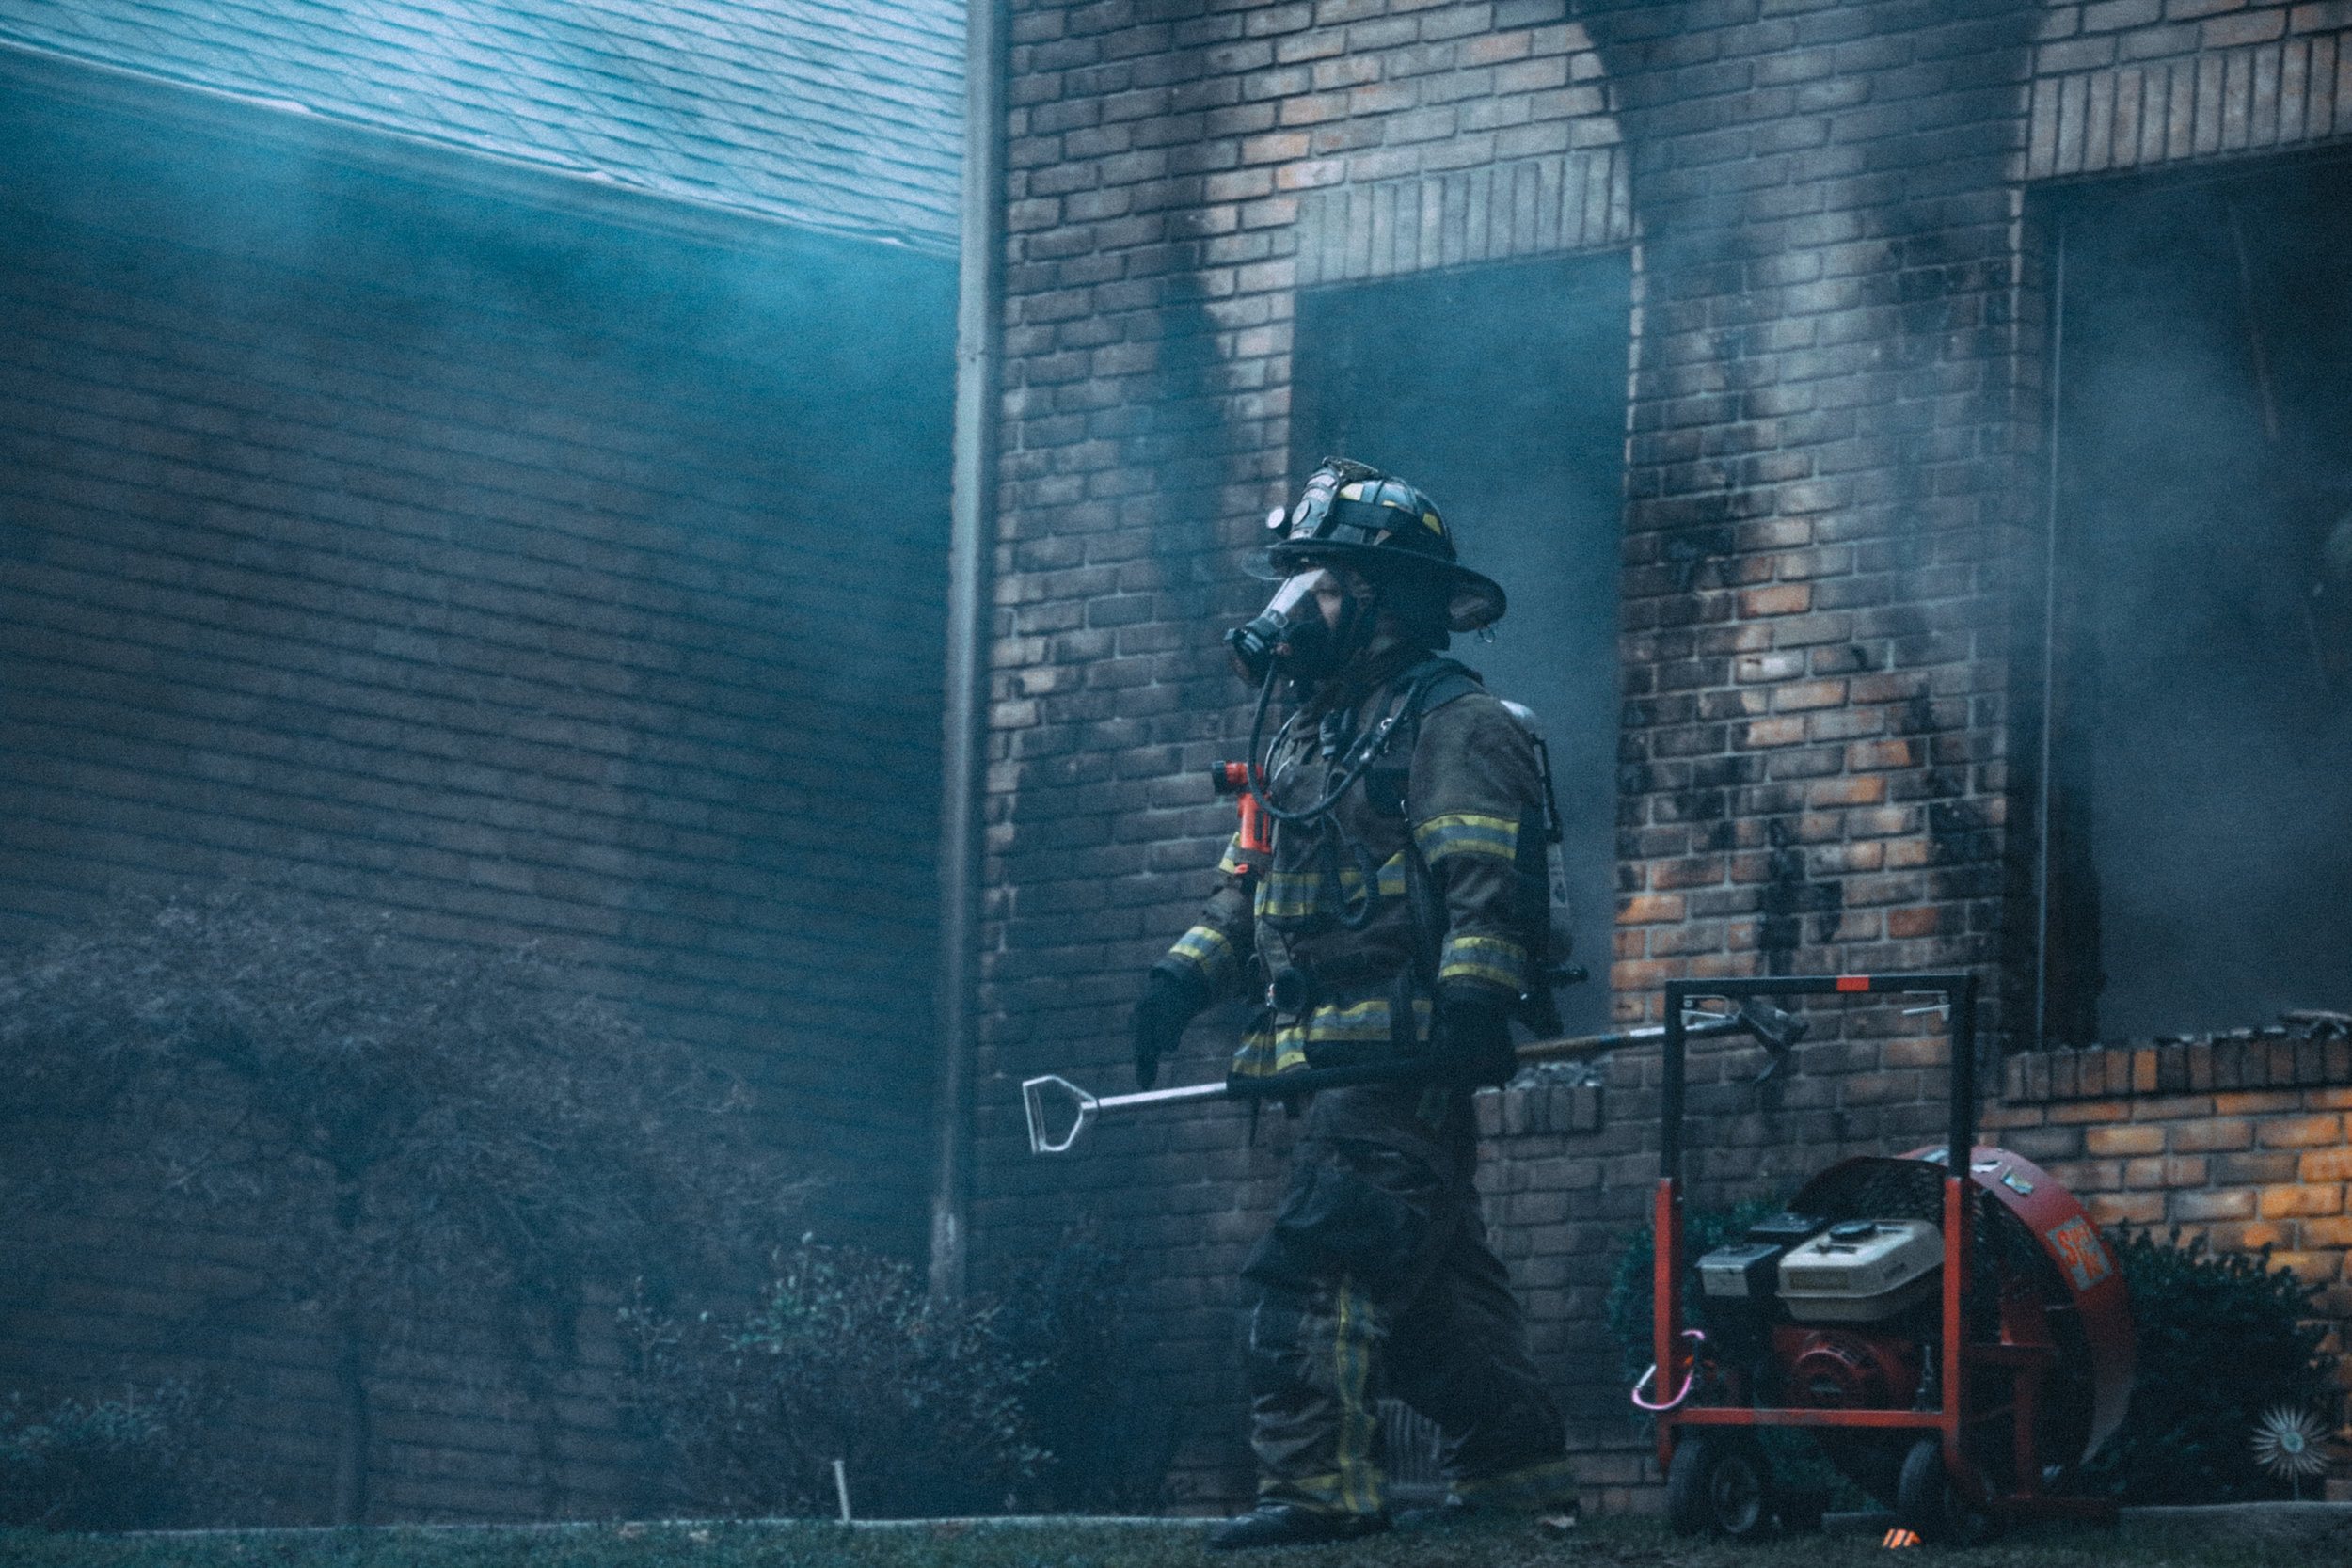 Firefighter Assessment -